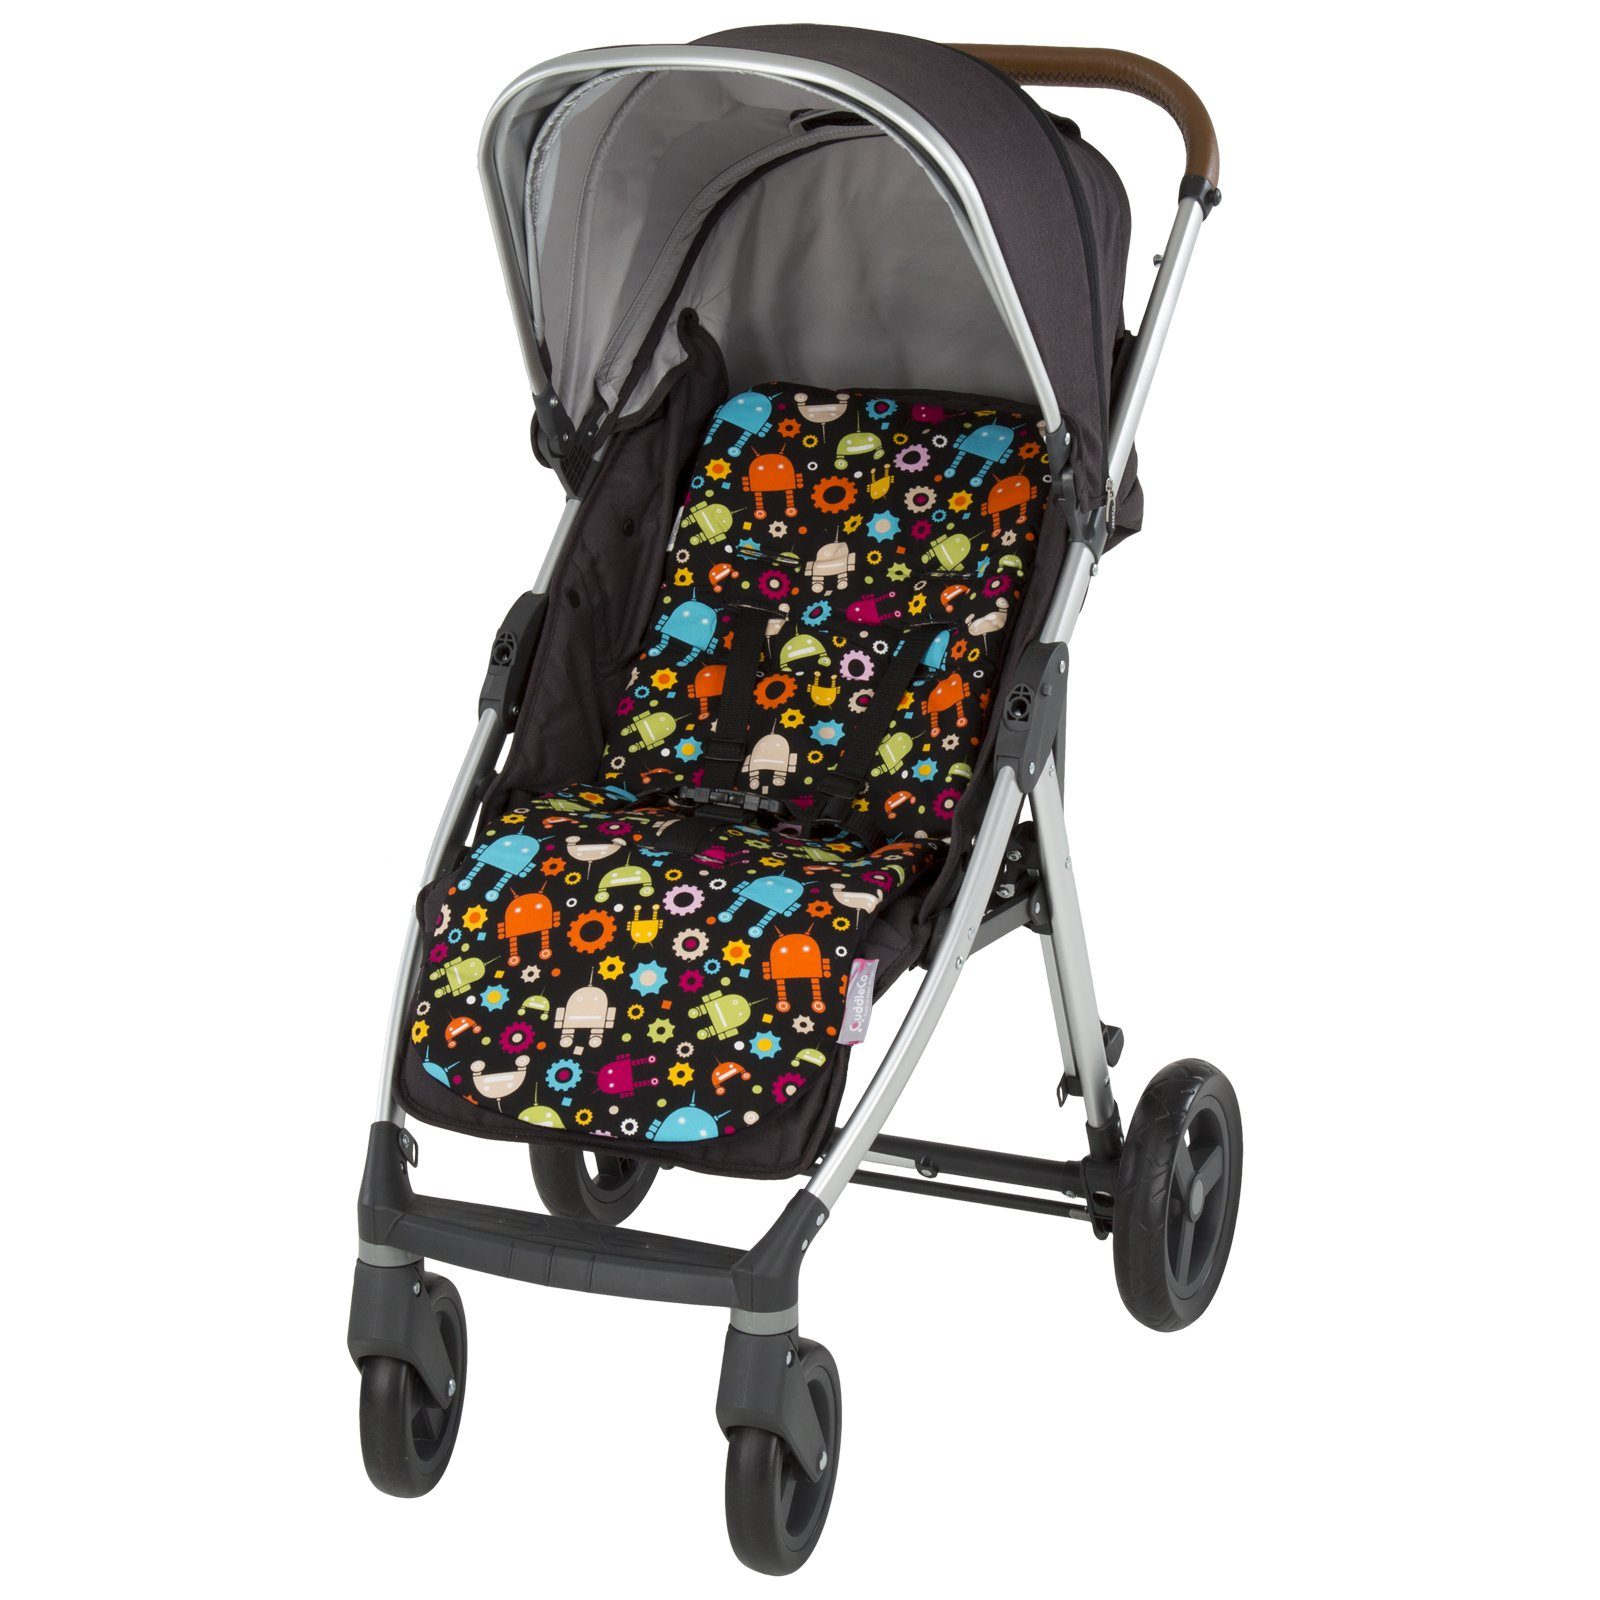 Comfi-Cush Memory Foam Stroller Liner - Robots On The Go cuddleco